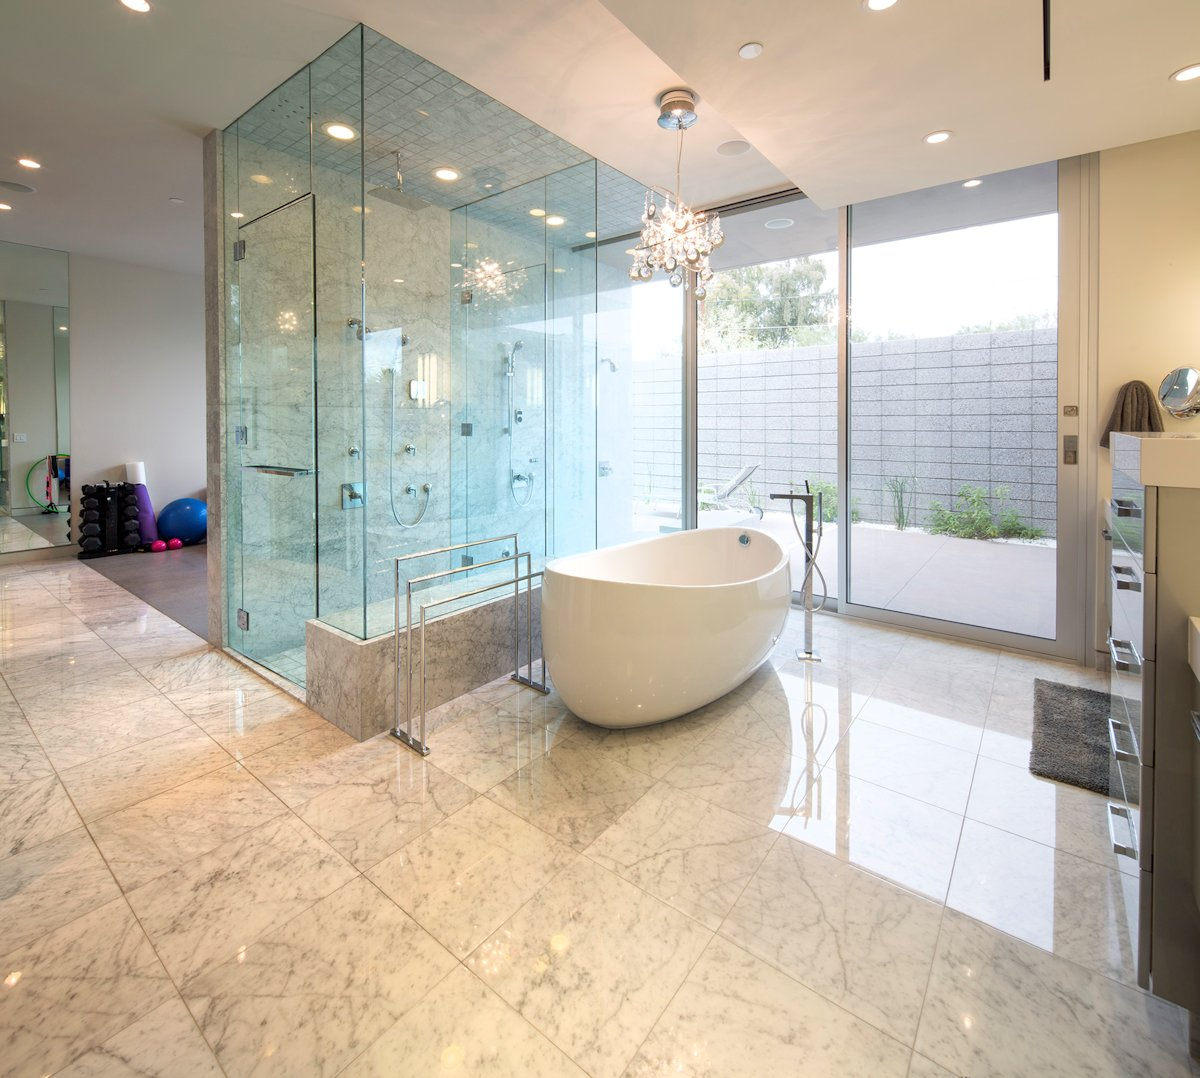 15 modern bathrooms with glass showers Beautiful modern bathroom design